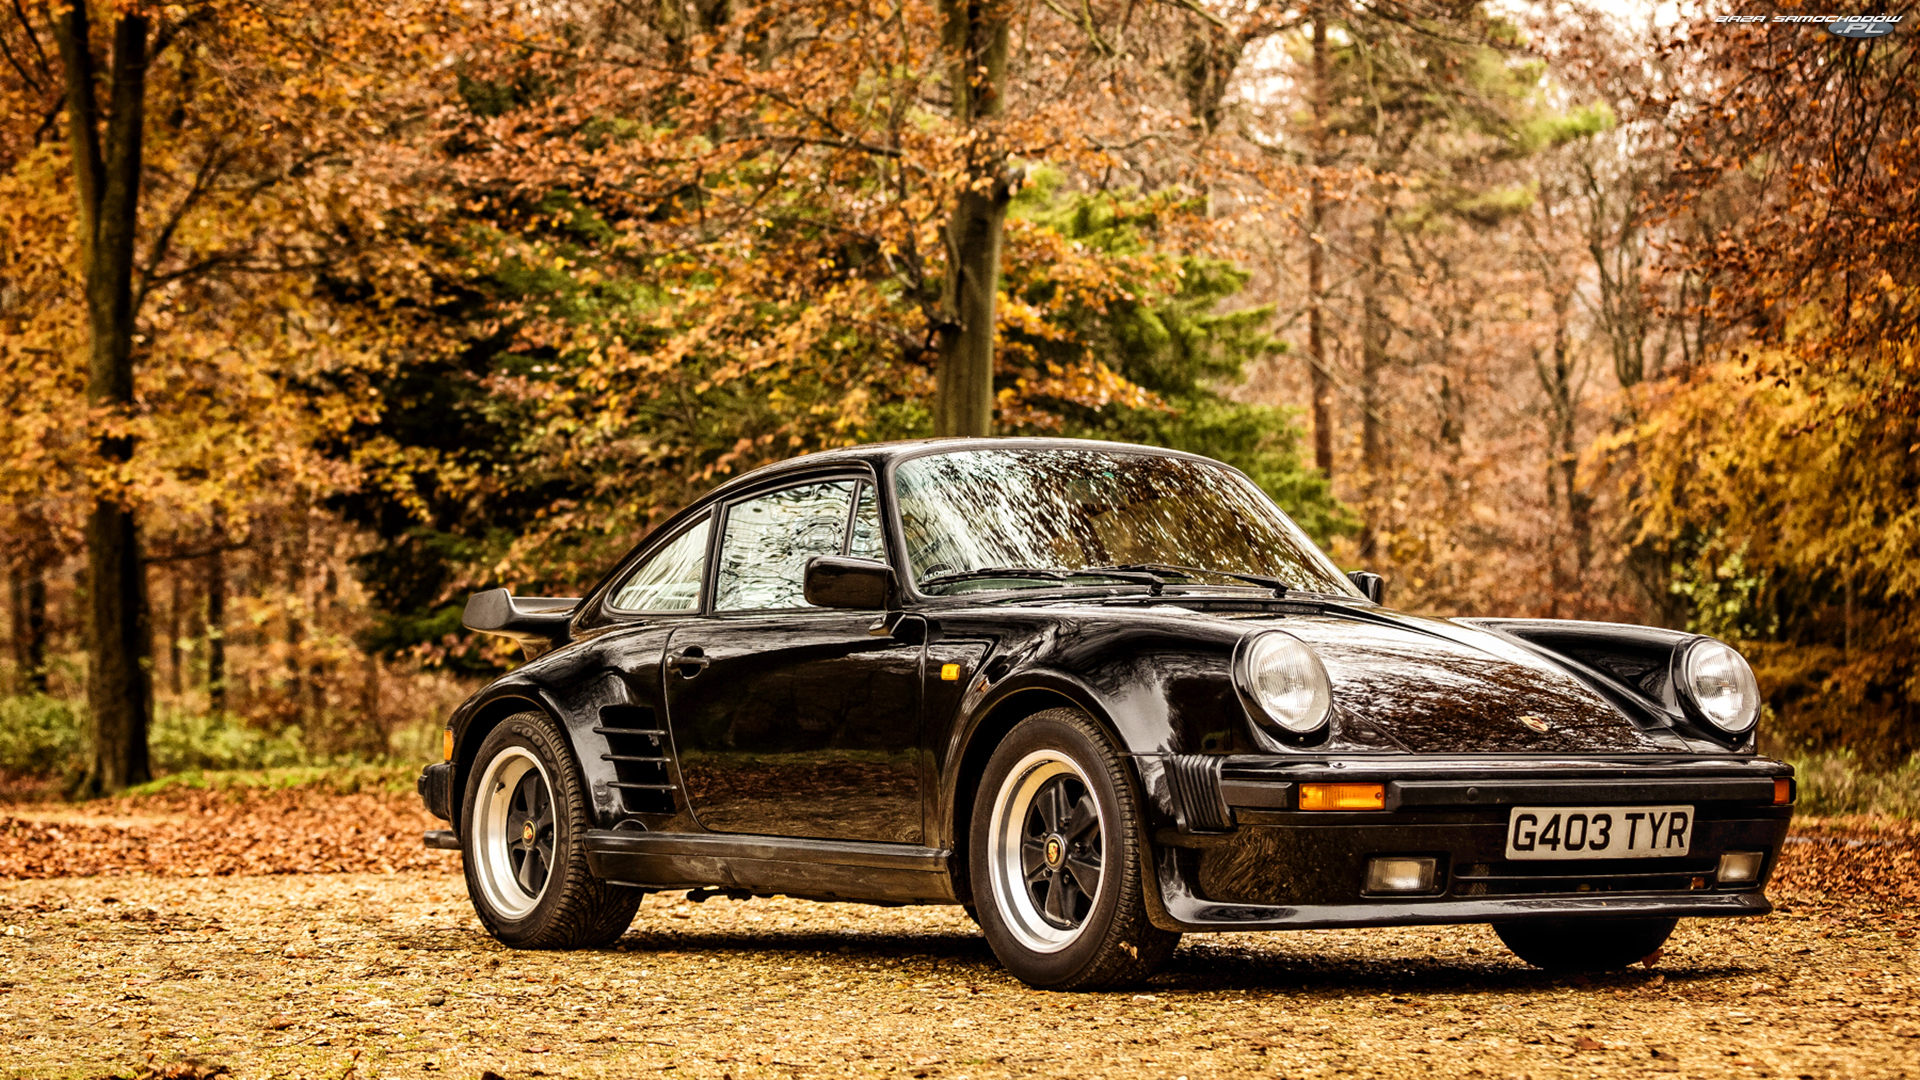 930 Limited Edition, Czarne, Porsche 911 turbo